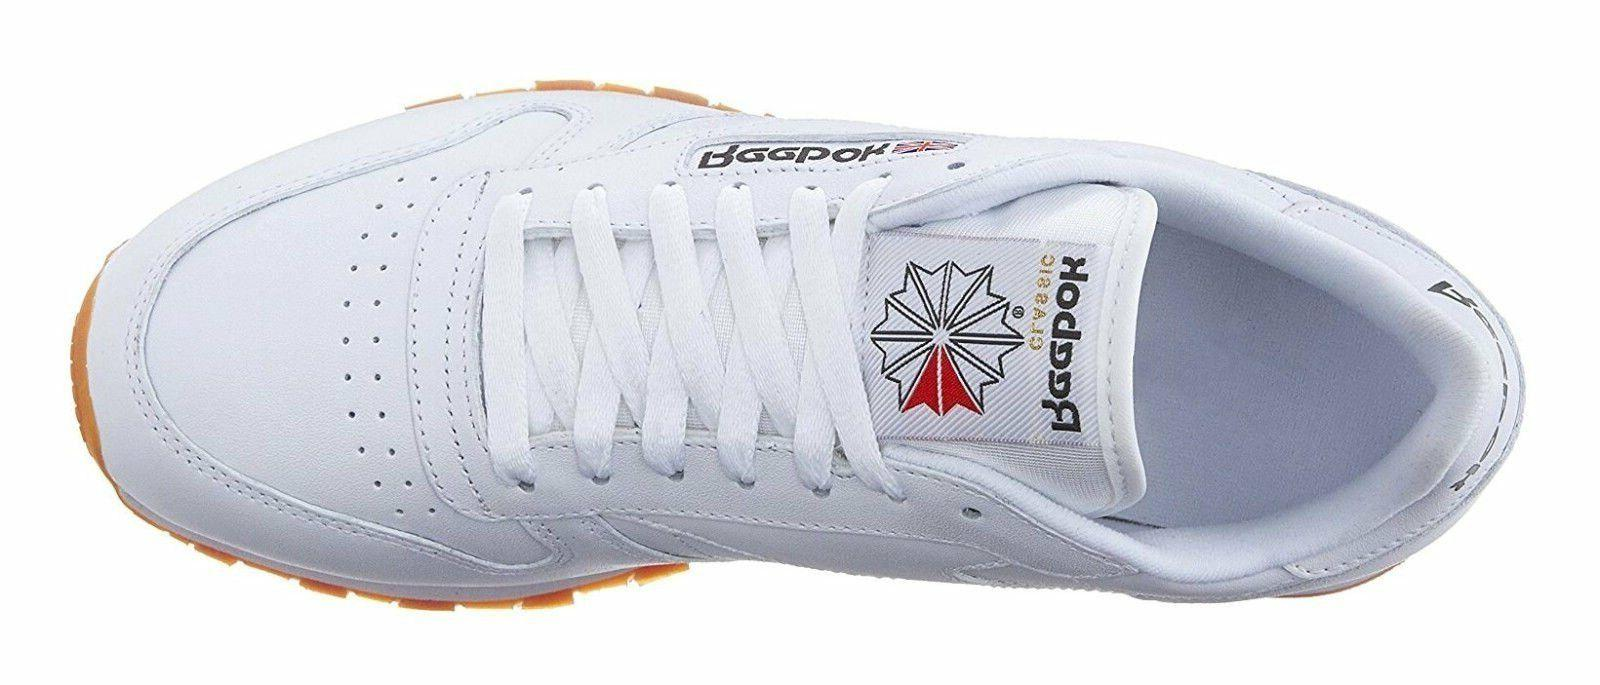 Reebok Classic Gum Tennis Shoes 49797